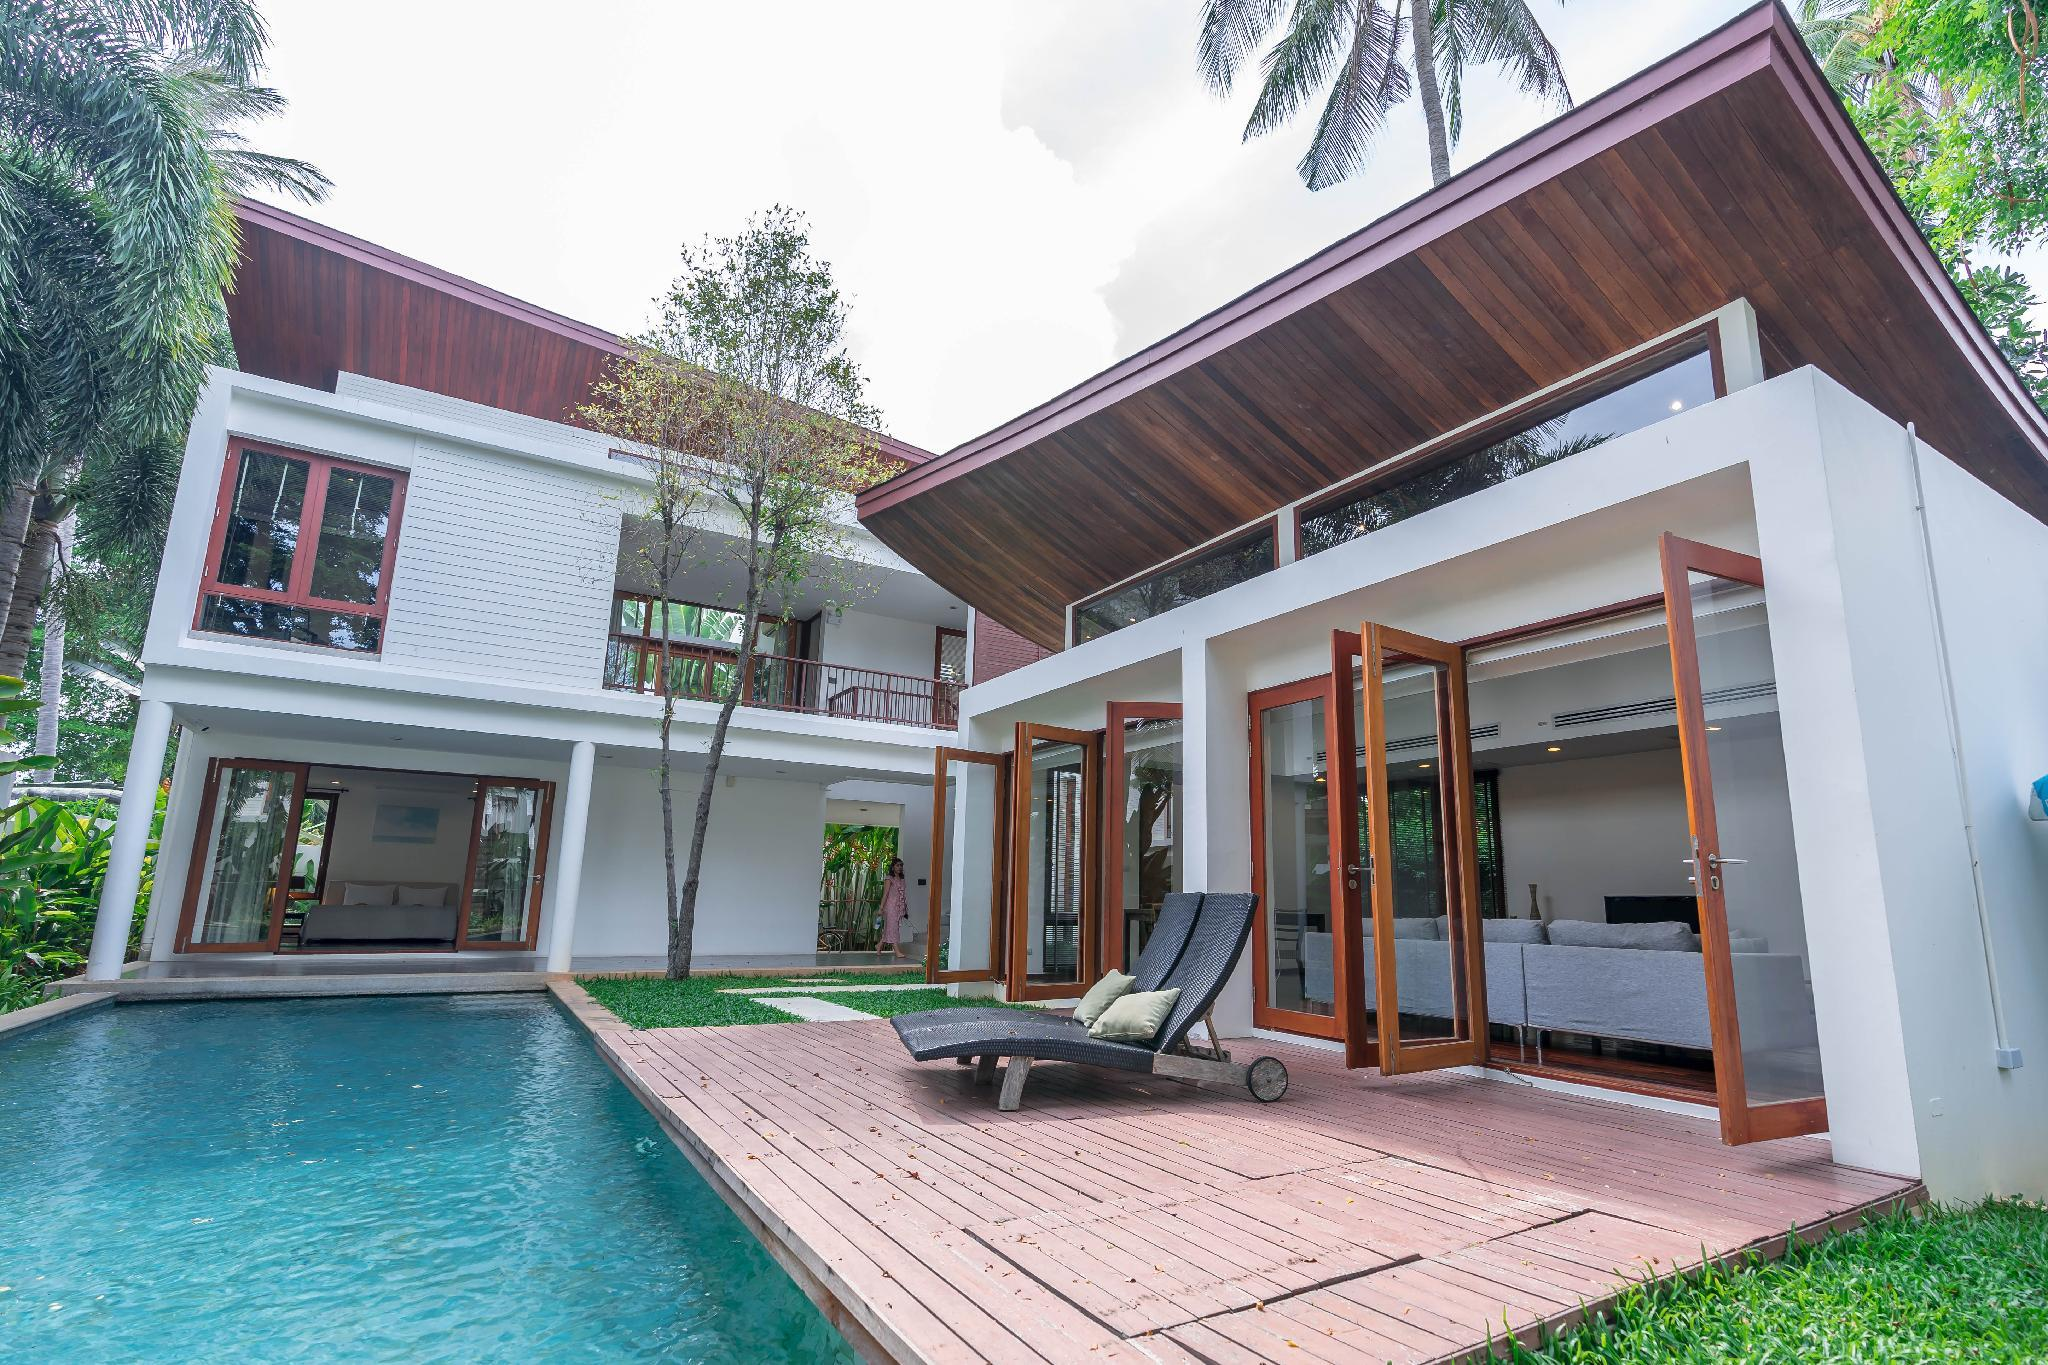 4 Bedroom Villa